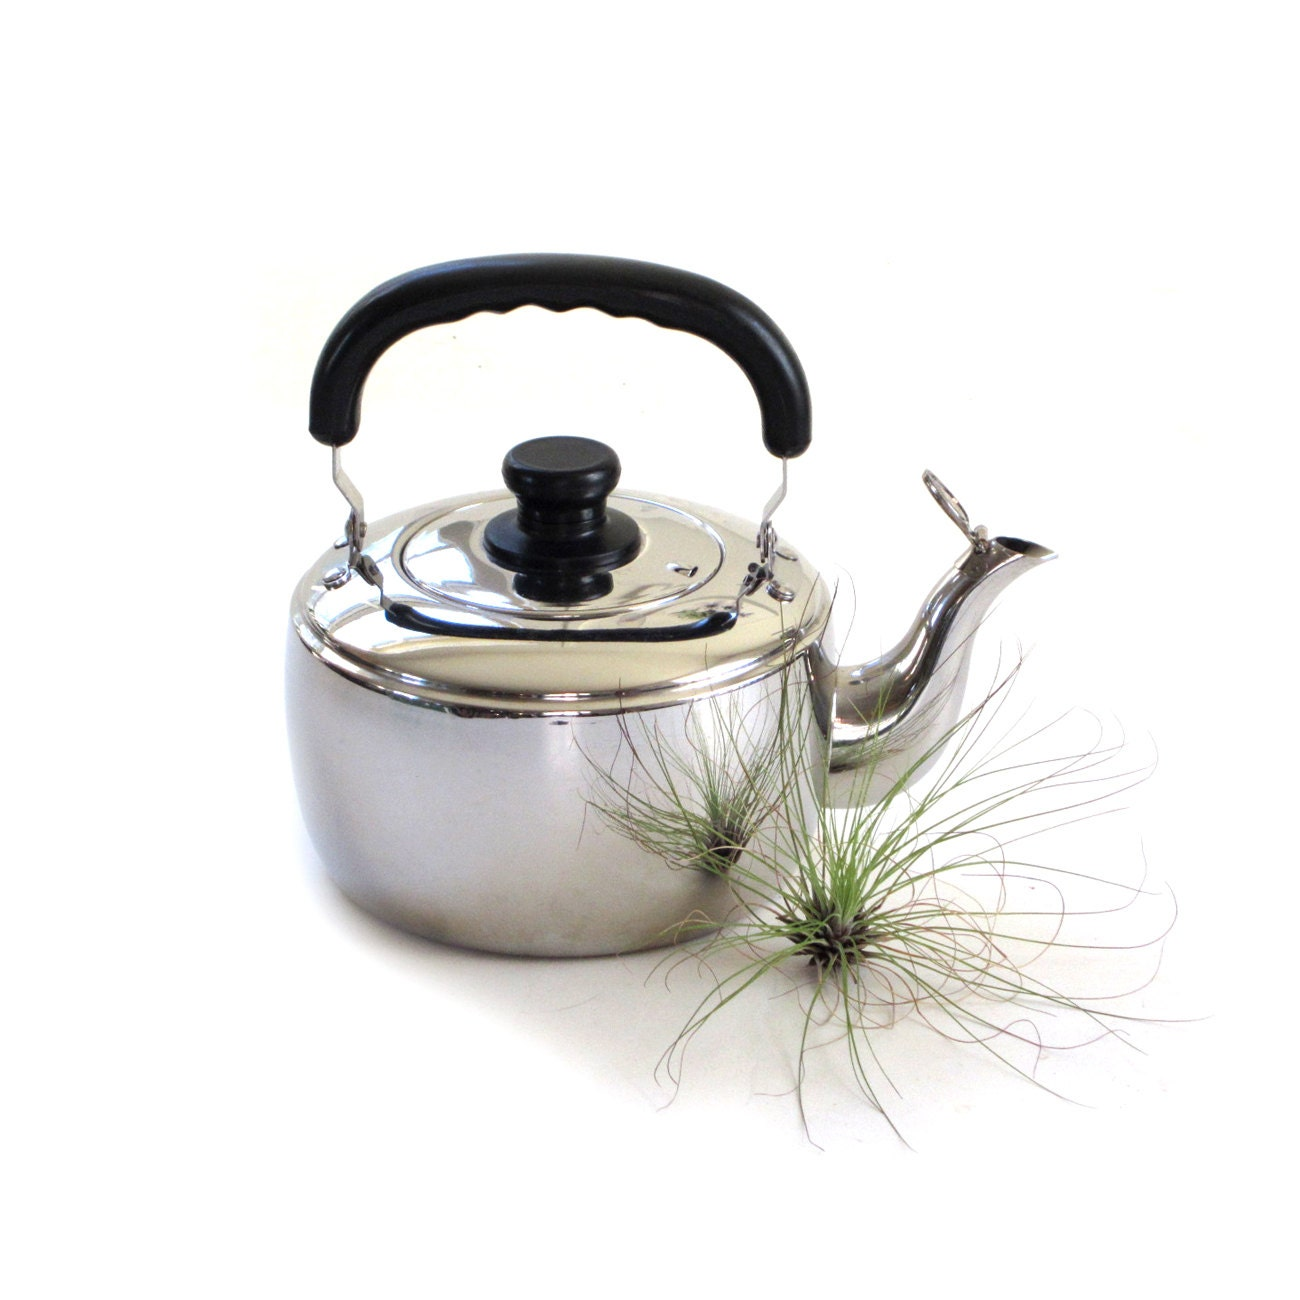 Vintage tea kettle casati aramco imports stainless steel 6 cup - Cup stainless steel teapot ...